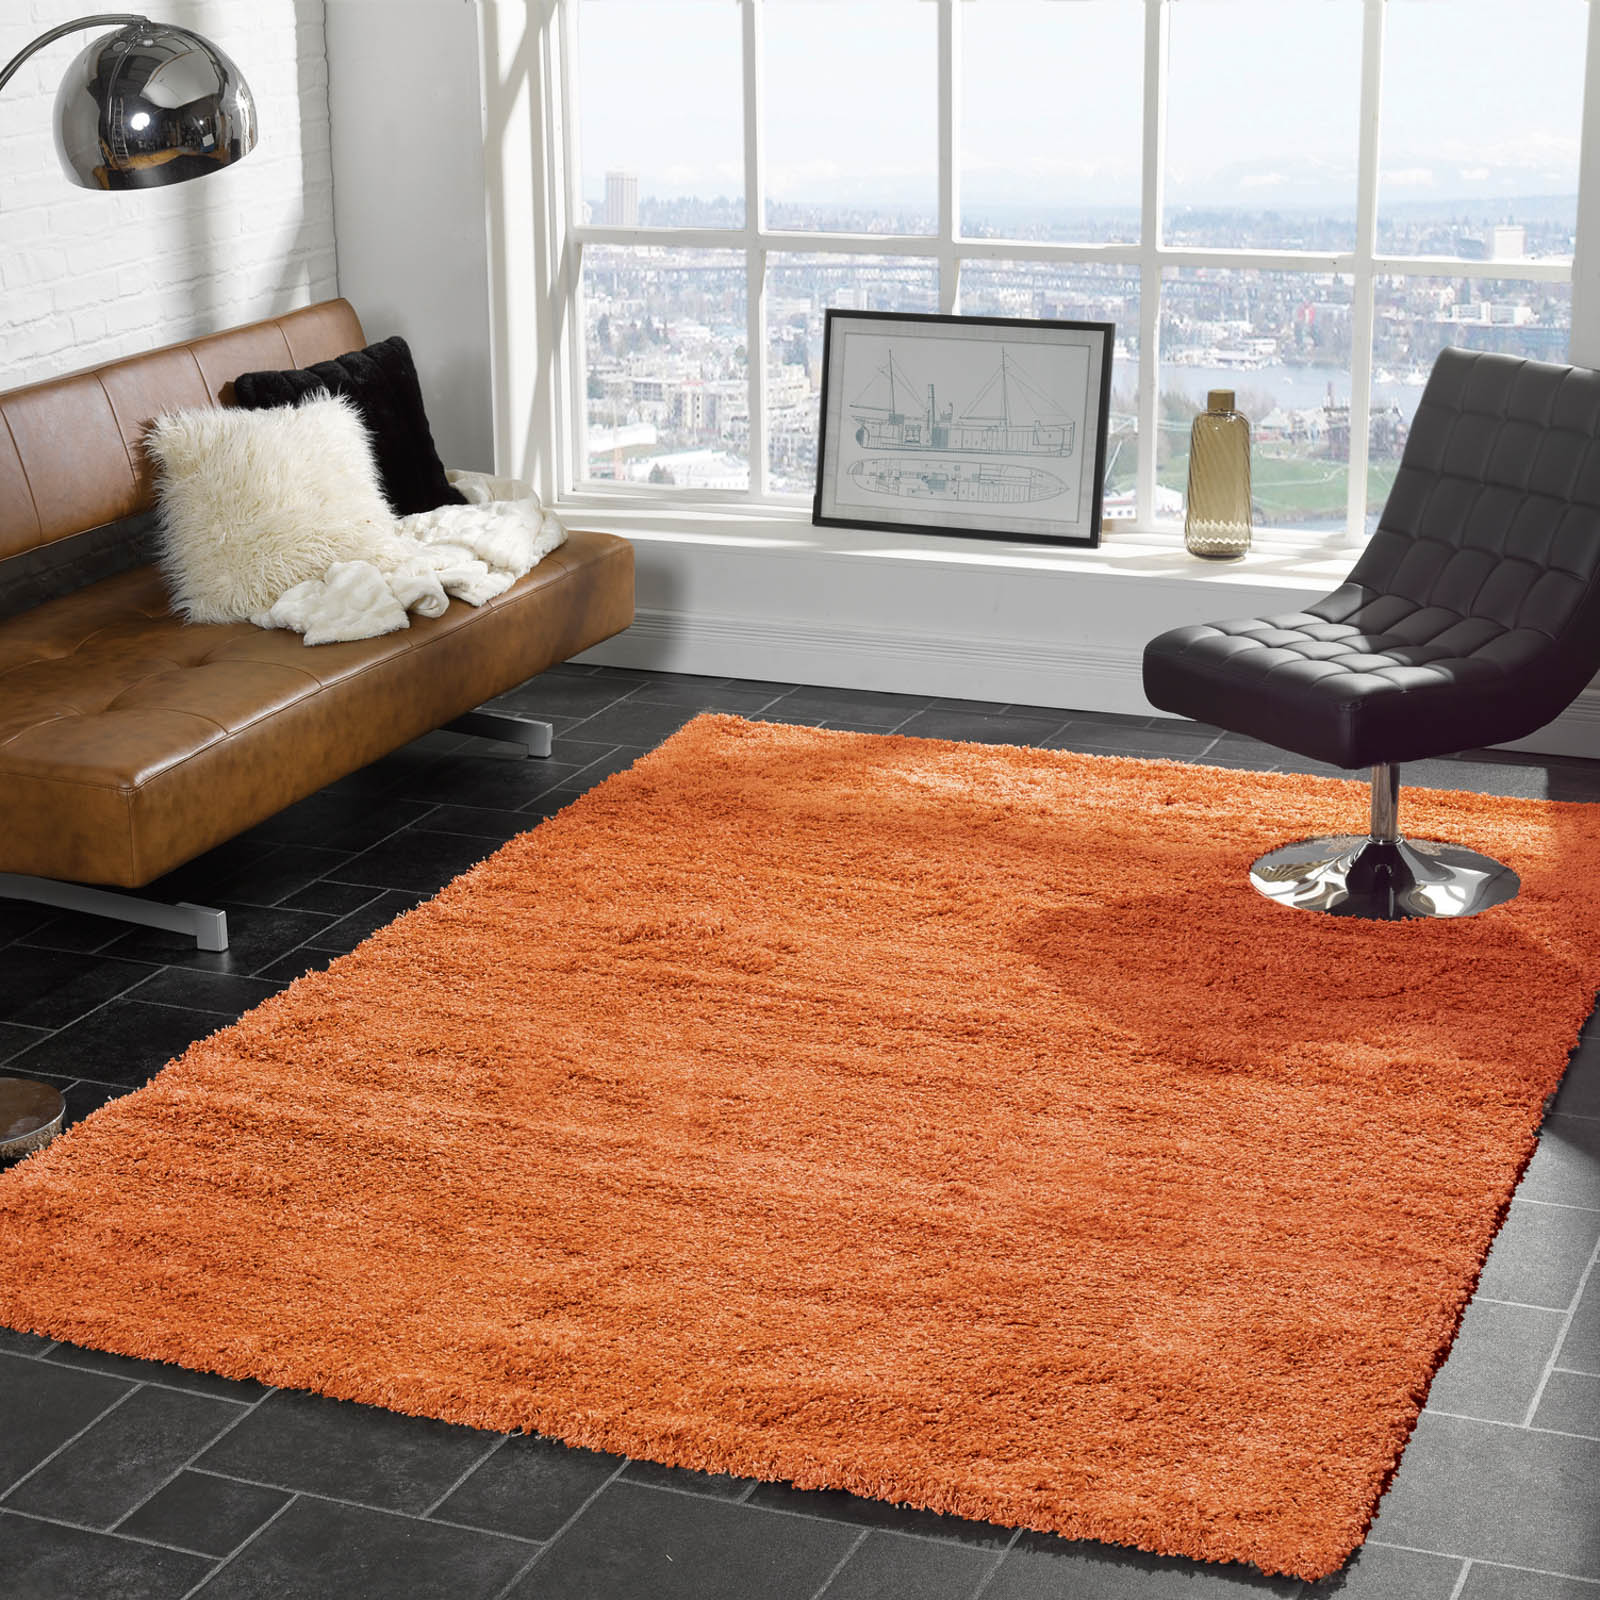 Discover How To Stop Rugs Slipping On Your Floor By The